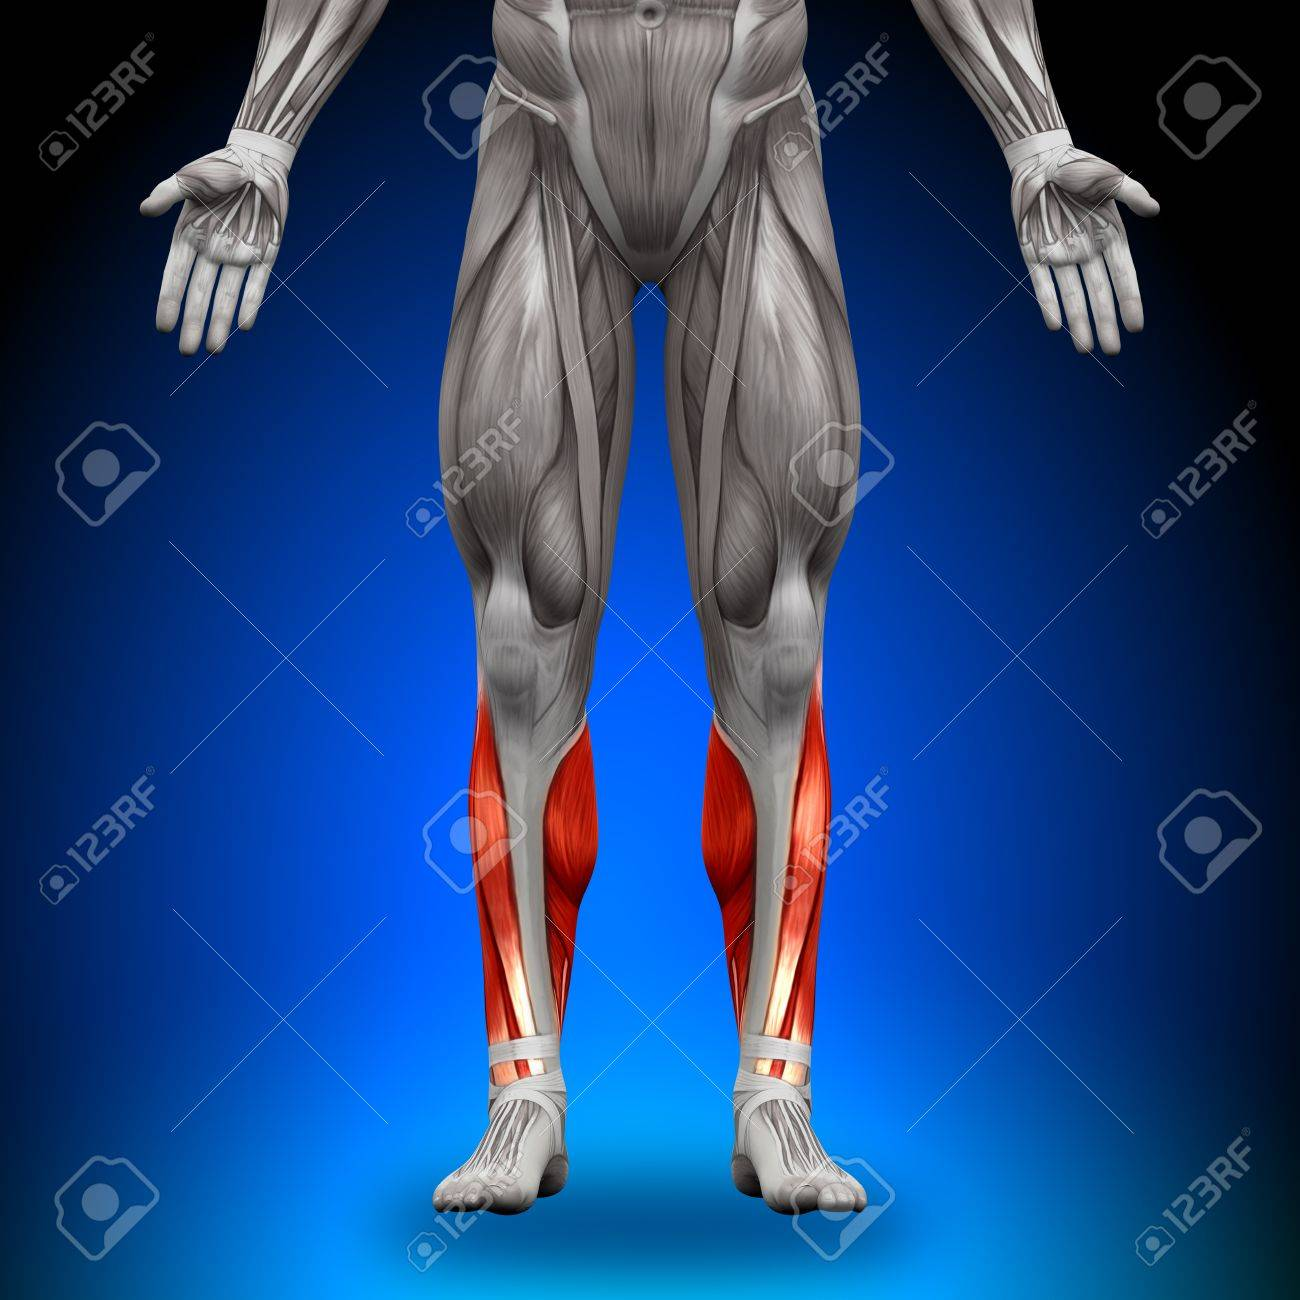 Calves Anatomy Muscles Stock Photo Picture And Royalty Free Image